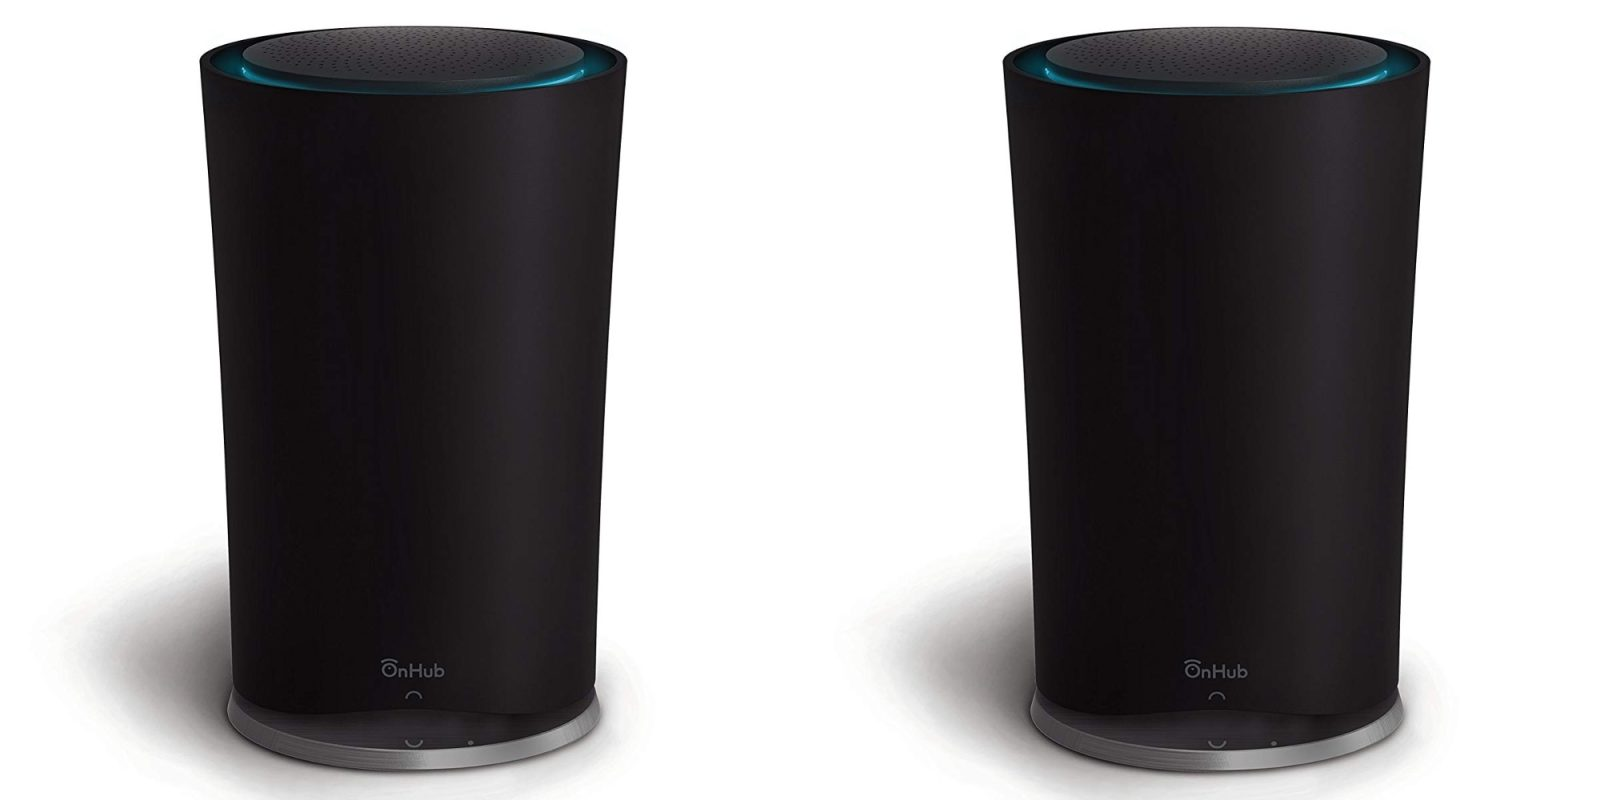 TP-Link's 802.11ac OnHub Wi-Fi router is perfect for your smart home at $55